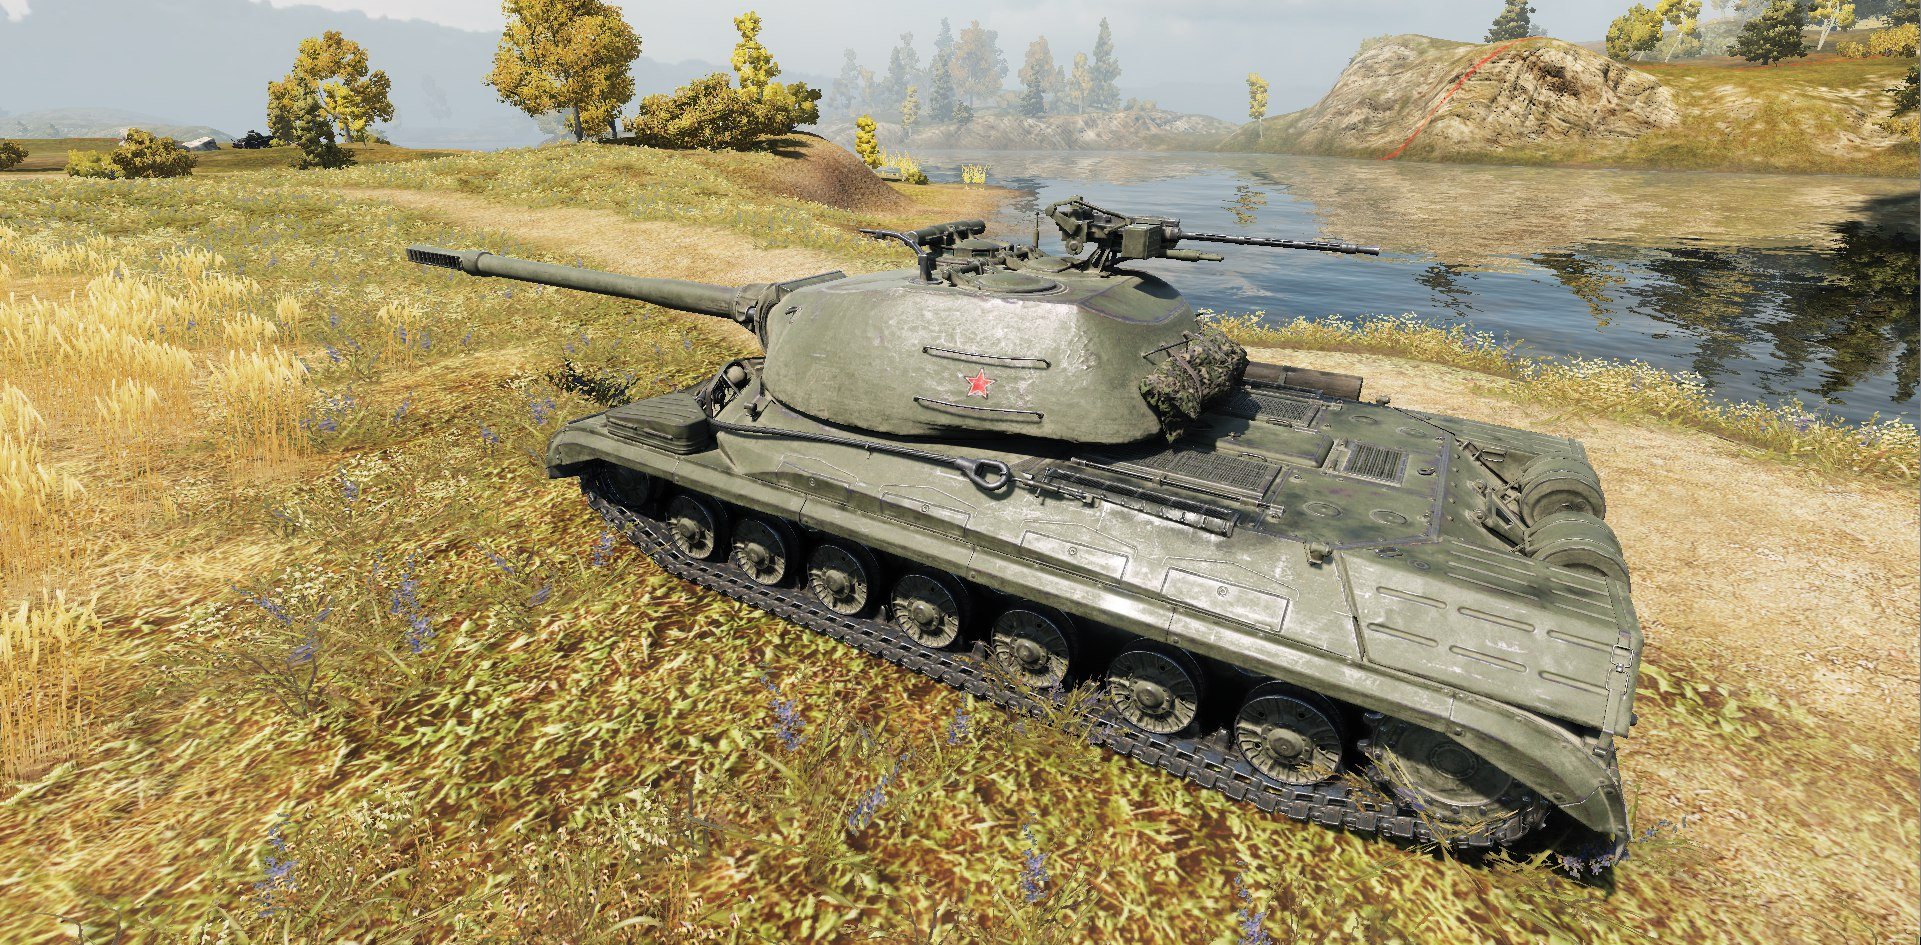 Моды Для World Of Tanks 0.8.11 Protanki